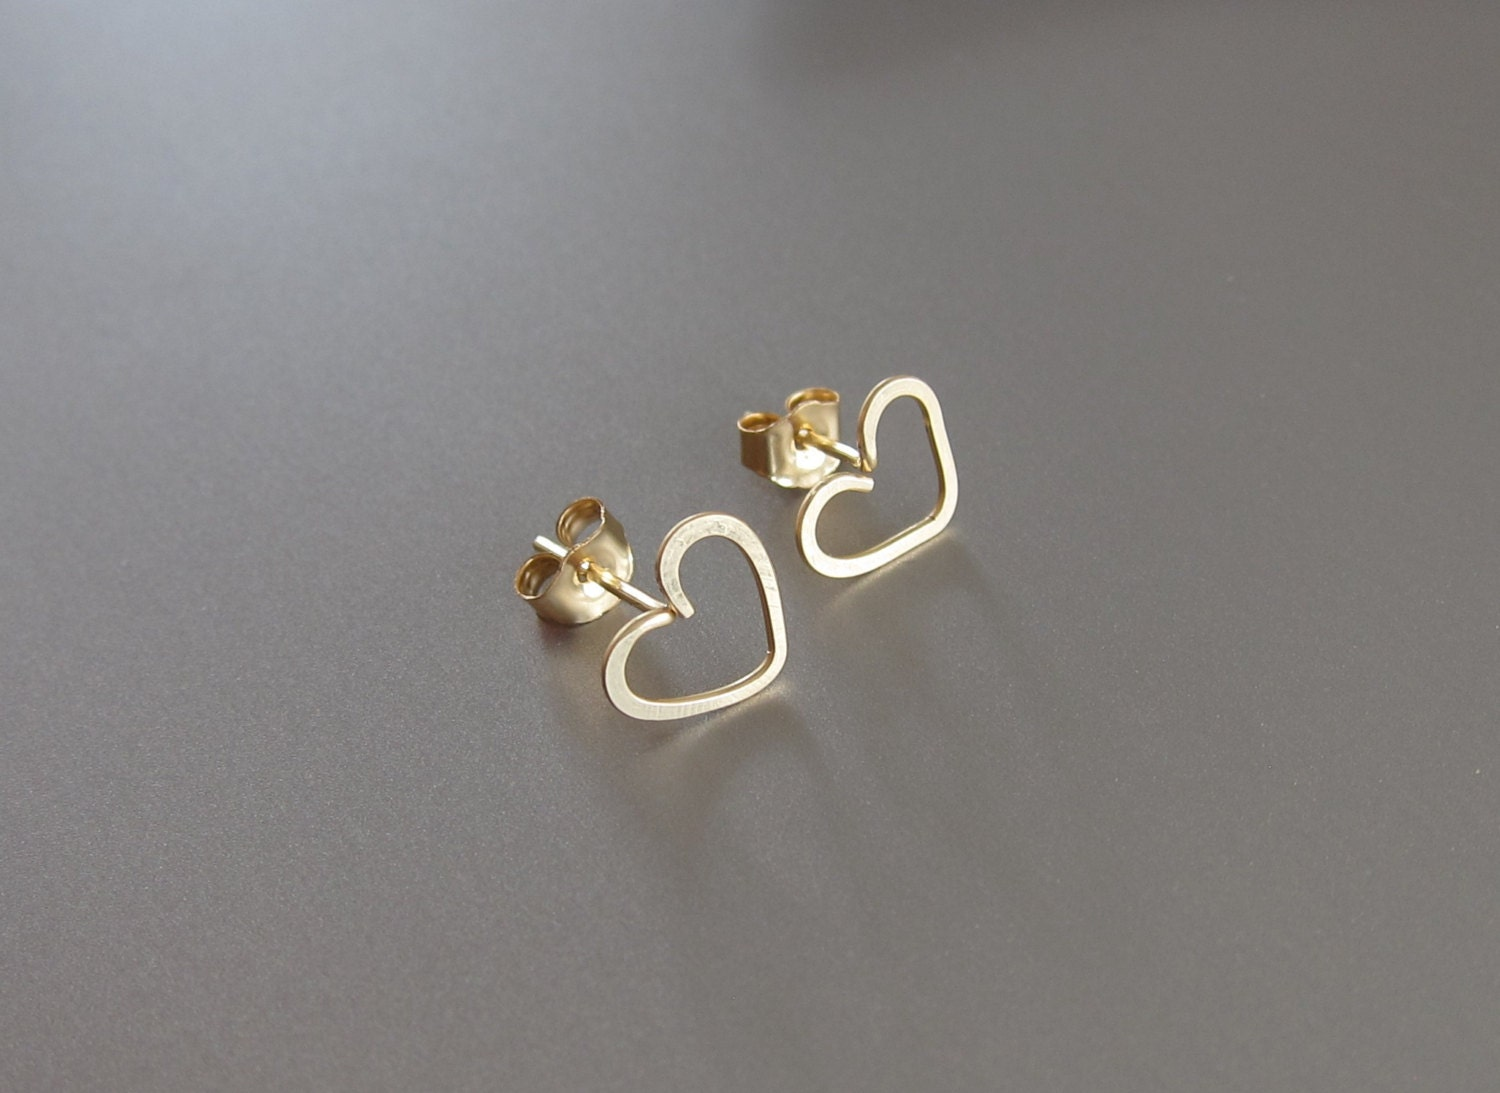 gold call m url colored set product source front us heart earrings women life hmprod shaped details h size type